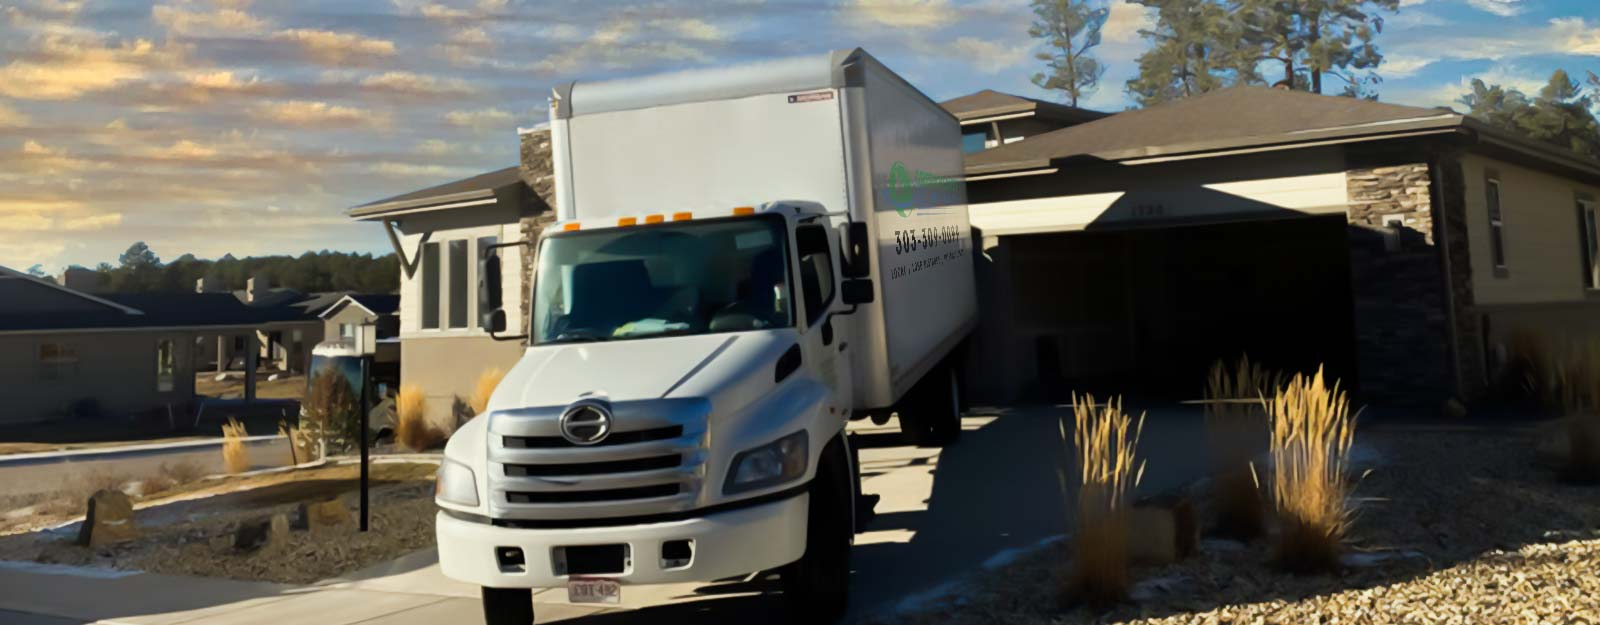 local moving company in denver